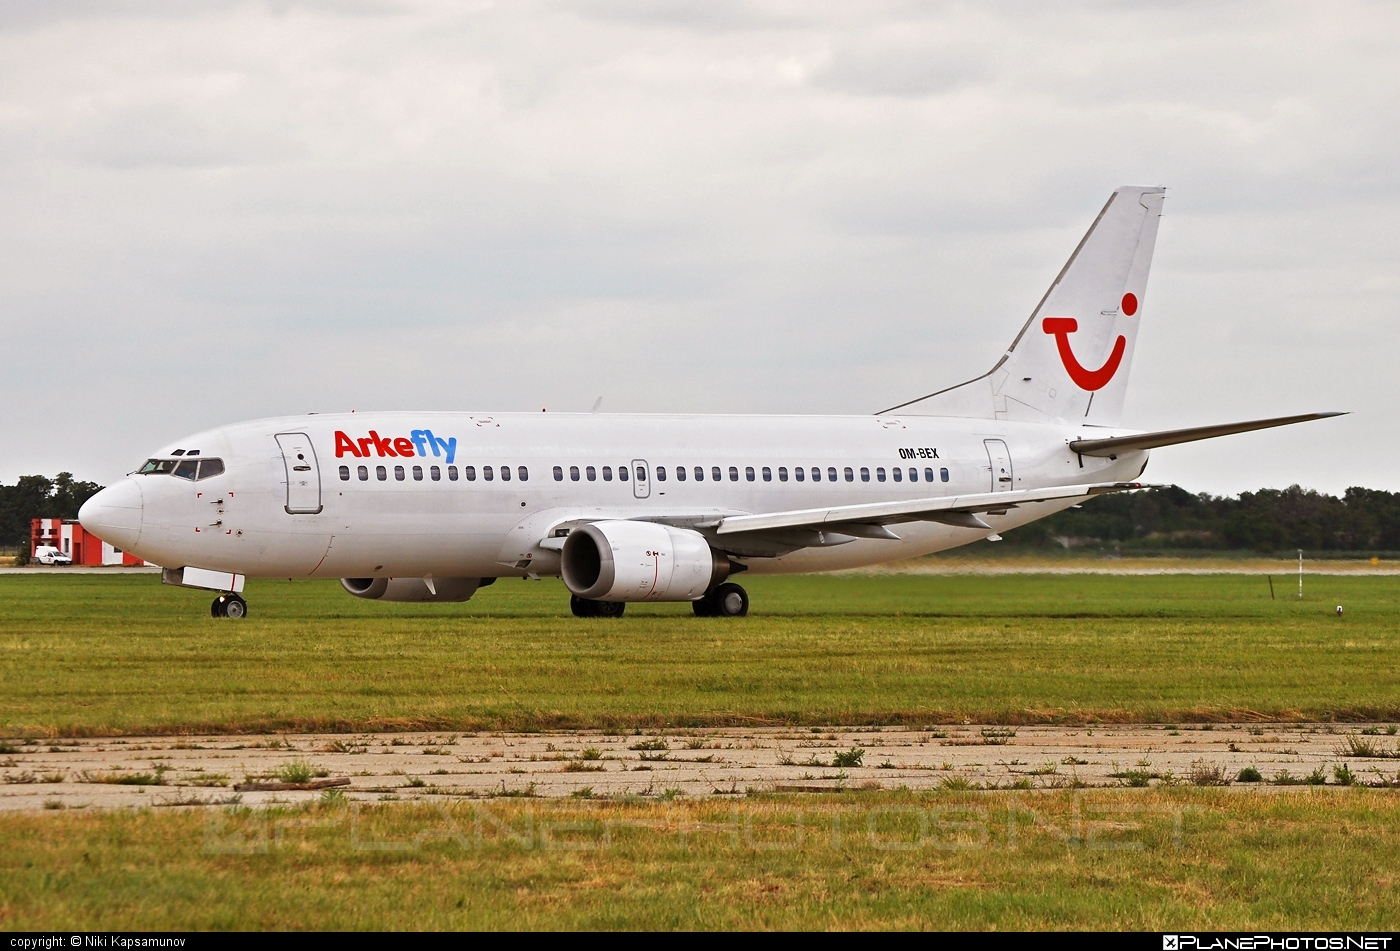 Boeing 737-300 - OM-BEX operated by AirExplore #airexplore #b737 #boeing #boeing737